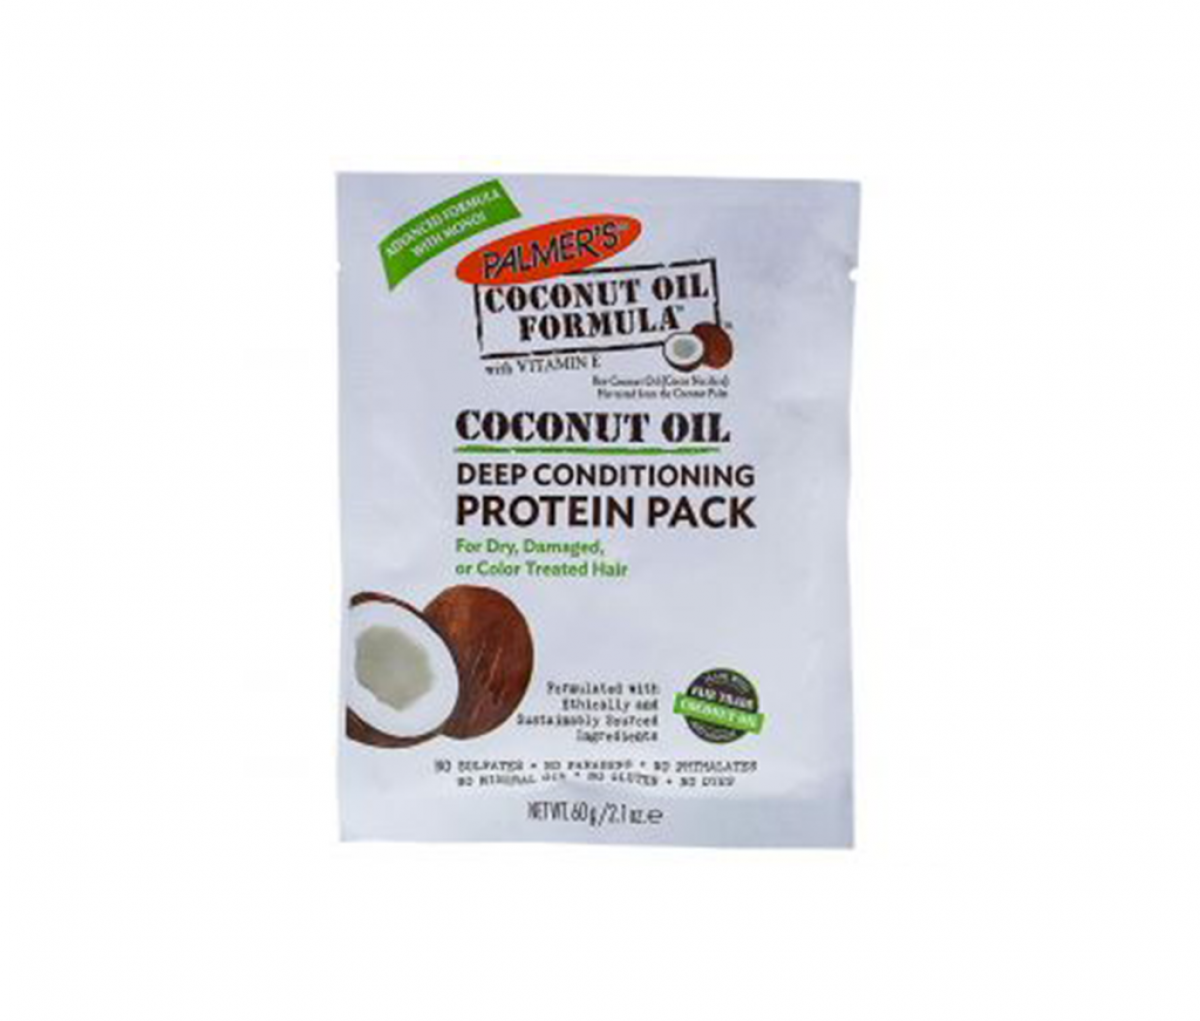 Palmers coconut oil formula Protein Pack